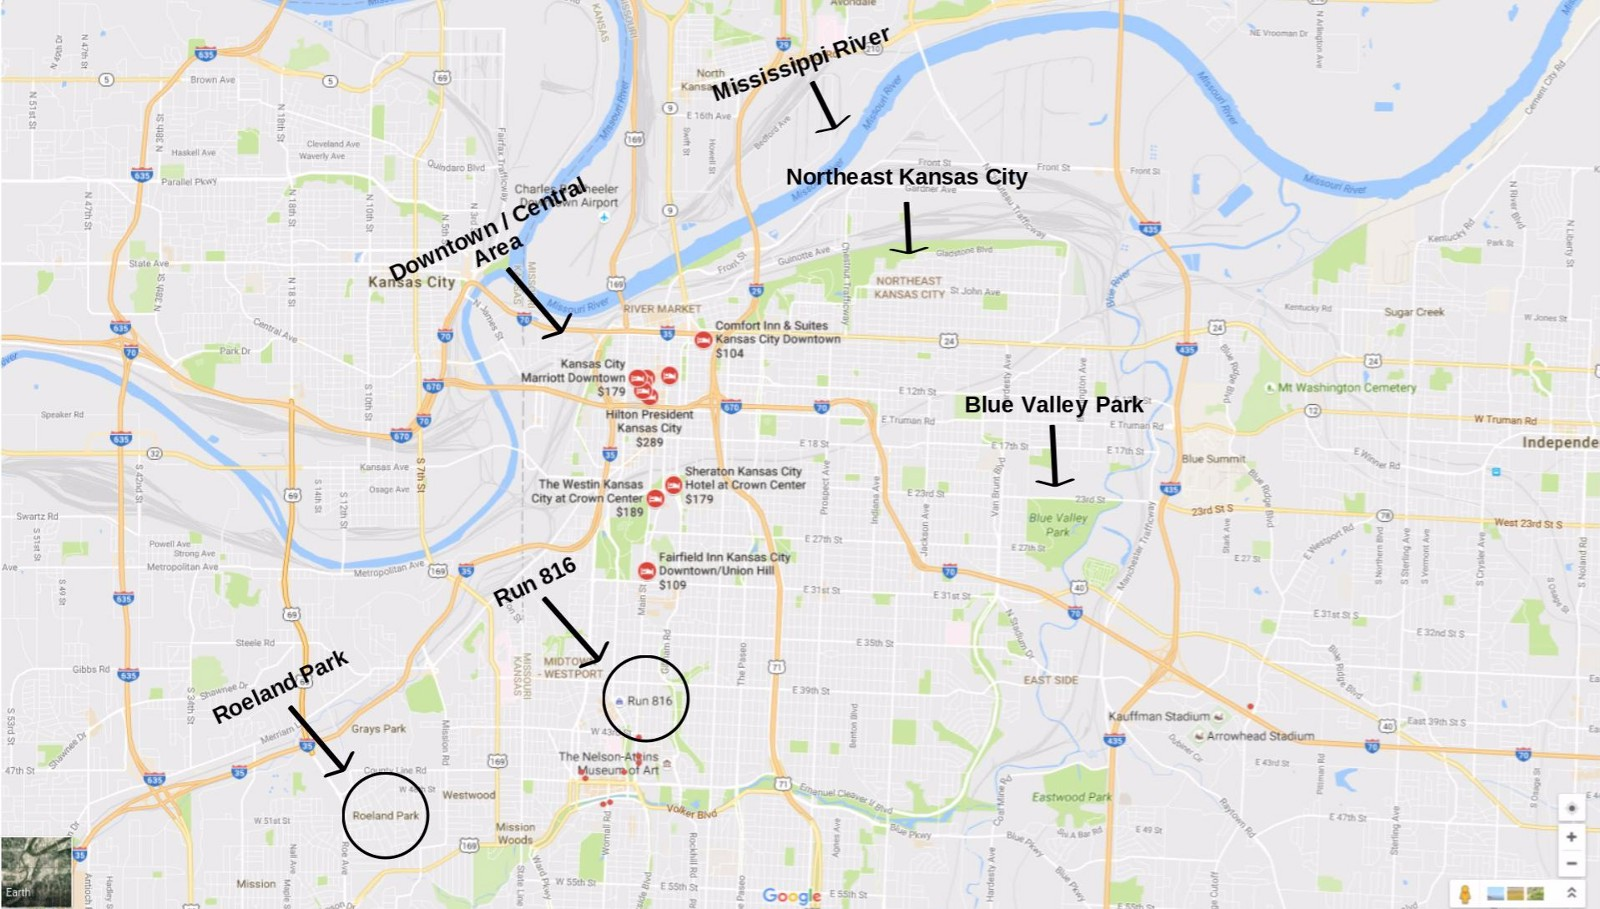 there are clusters of hotels near downtown the plaza and some more towards northeast kansas city the map below displays several hotels near downtown and